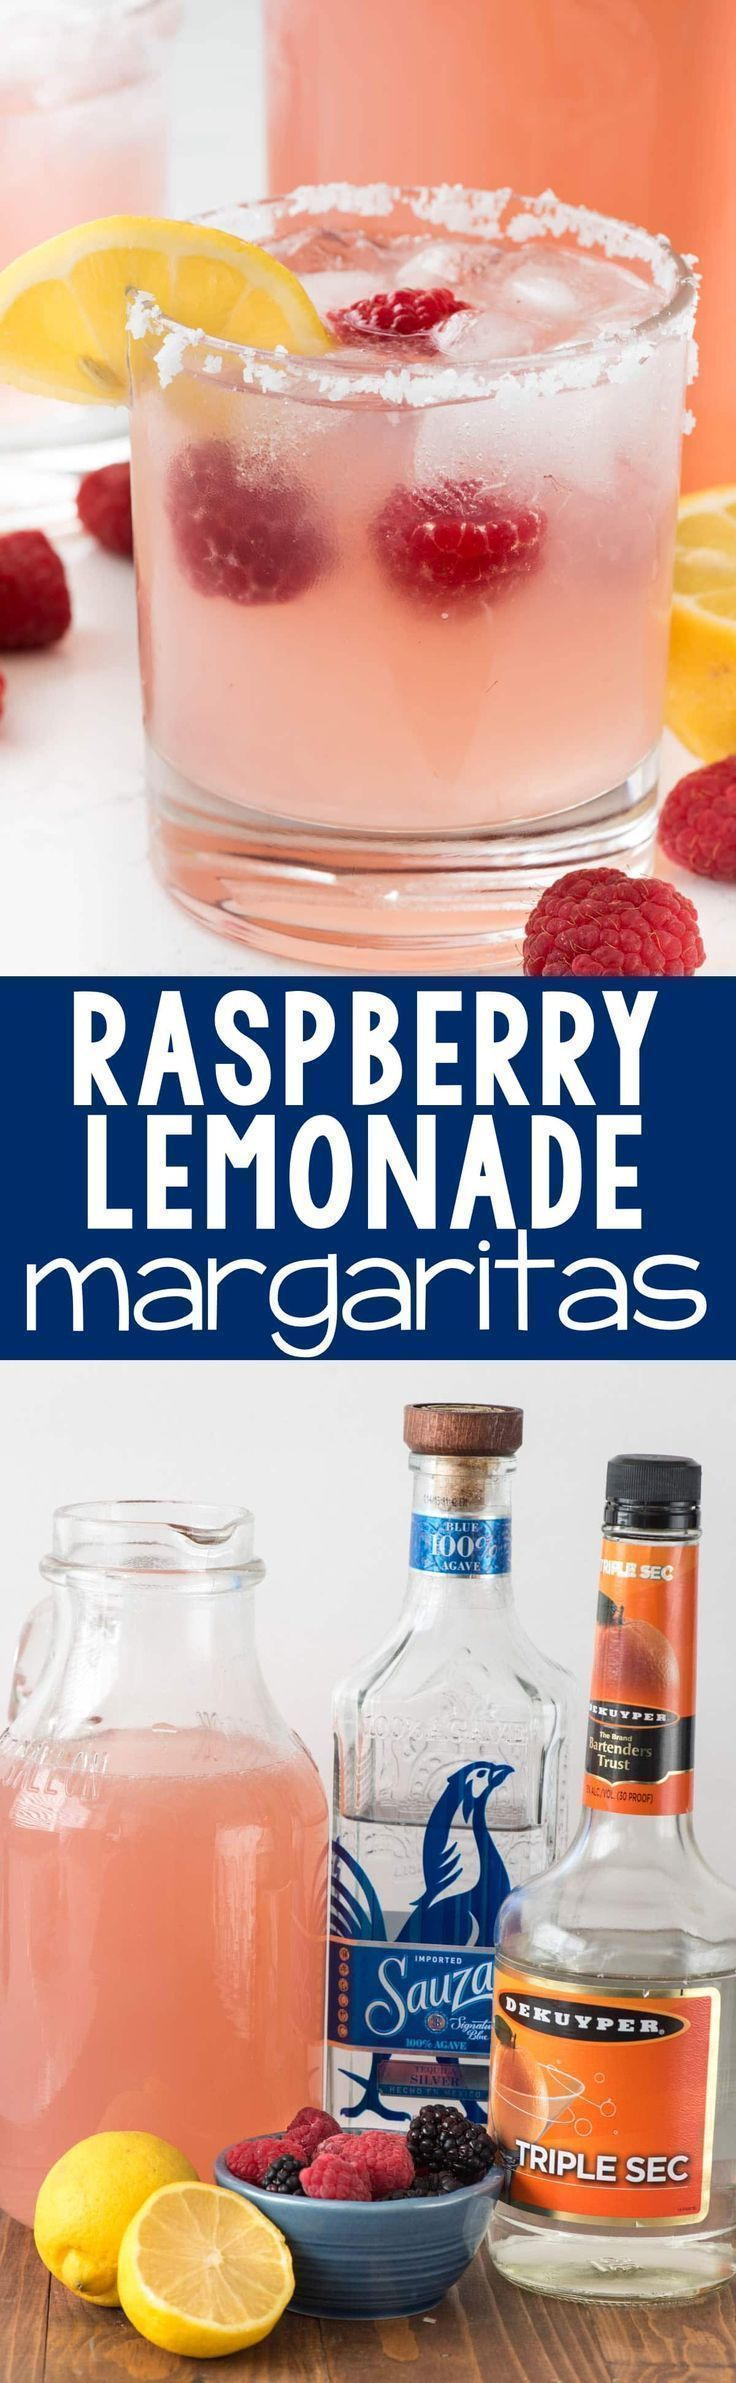 Raspberry Lemonade Margarita - this EASY cocktail recipe is the perfect margarita! Raspberry Lemonade, tequila, and triple sec- that's all it takes to make a pitcher! #cocktailrecipes